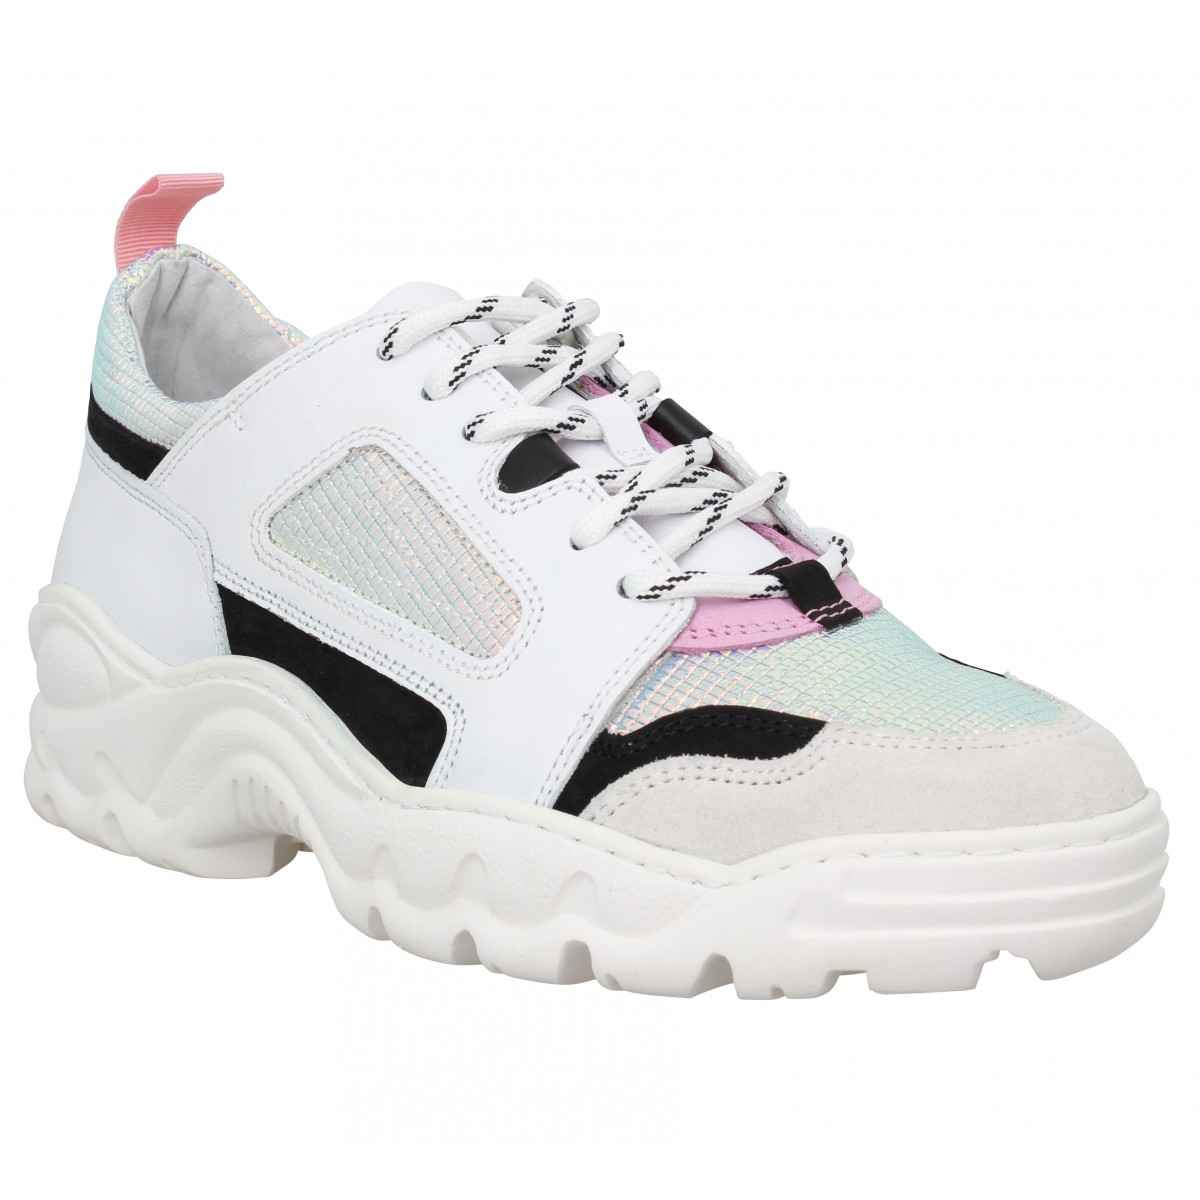 Baskets DATE SNEAKERS Prozac Colored cuir Femme Blanc Argent